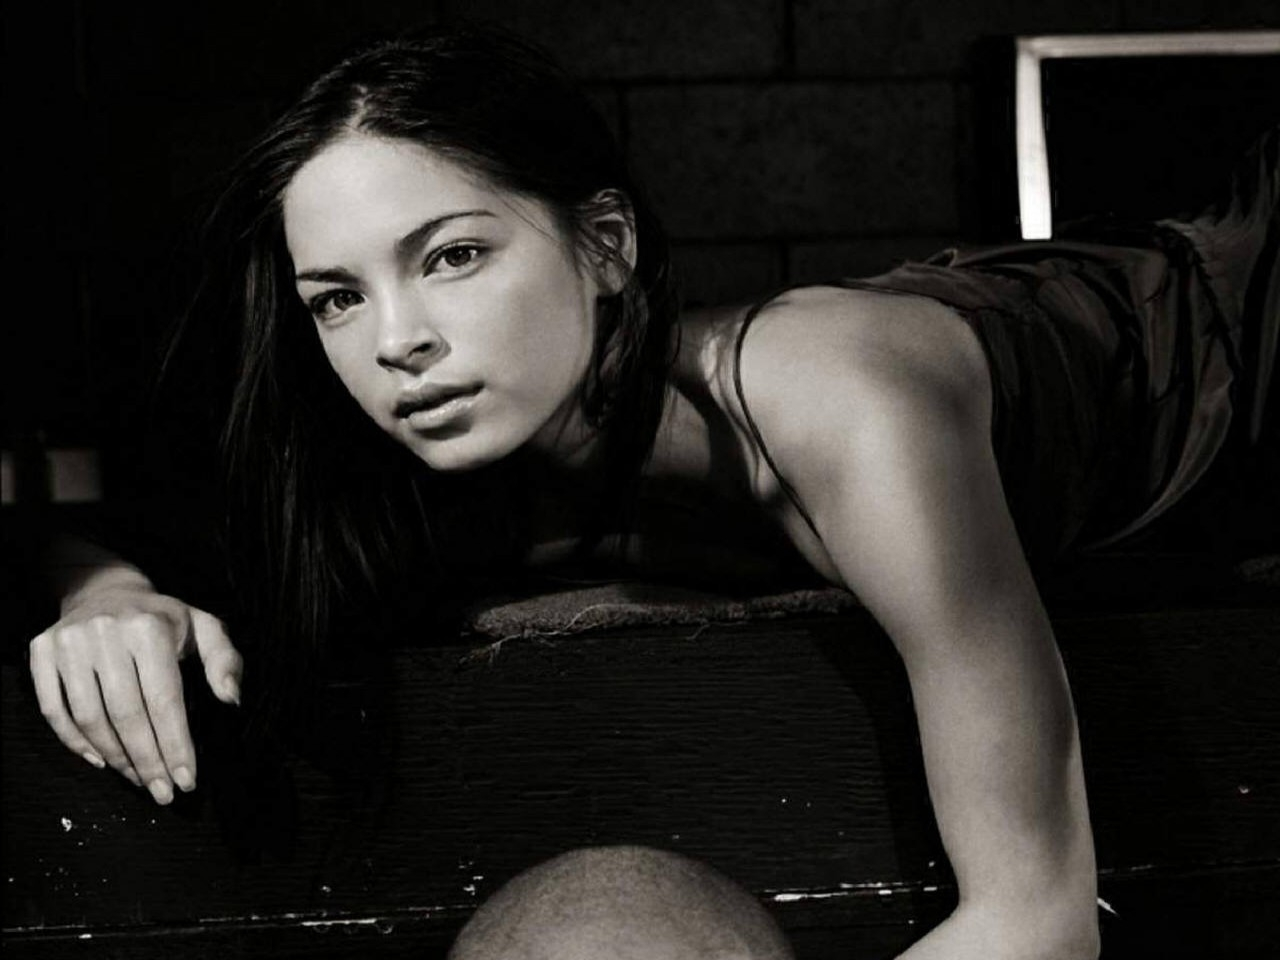 Wallpaper di Kristin Kreuk in b/n